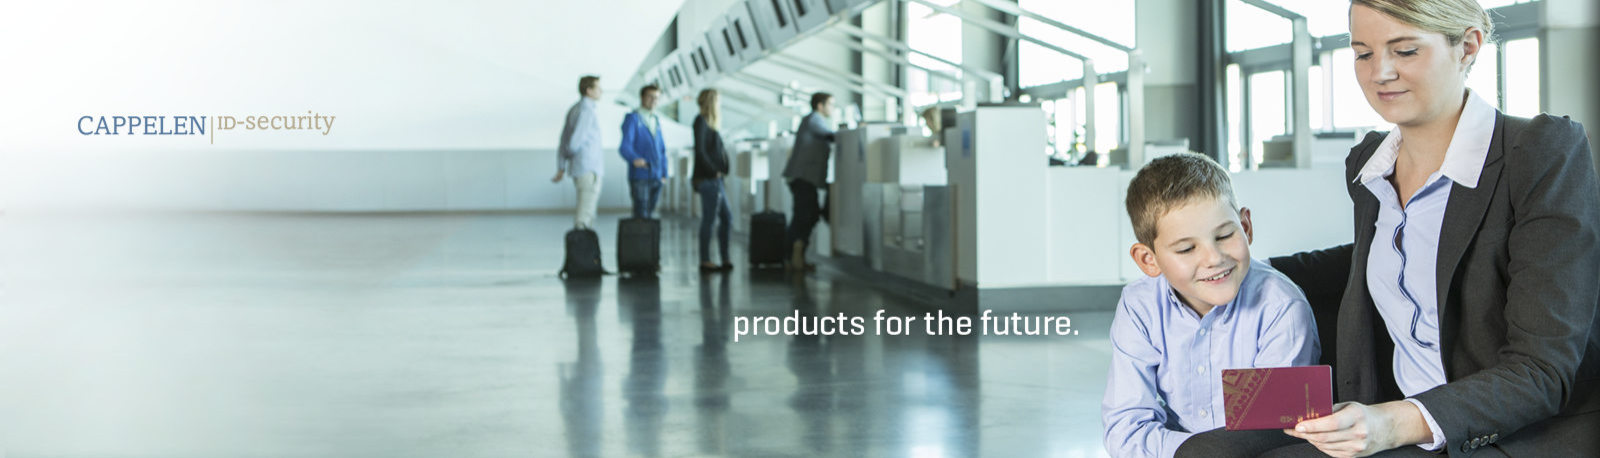 products for the future.